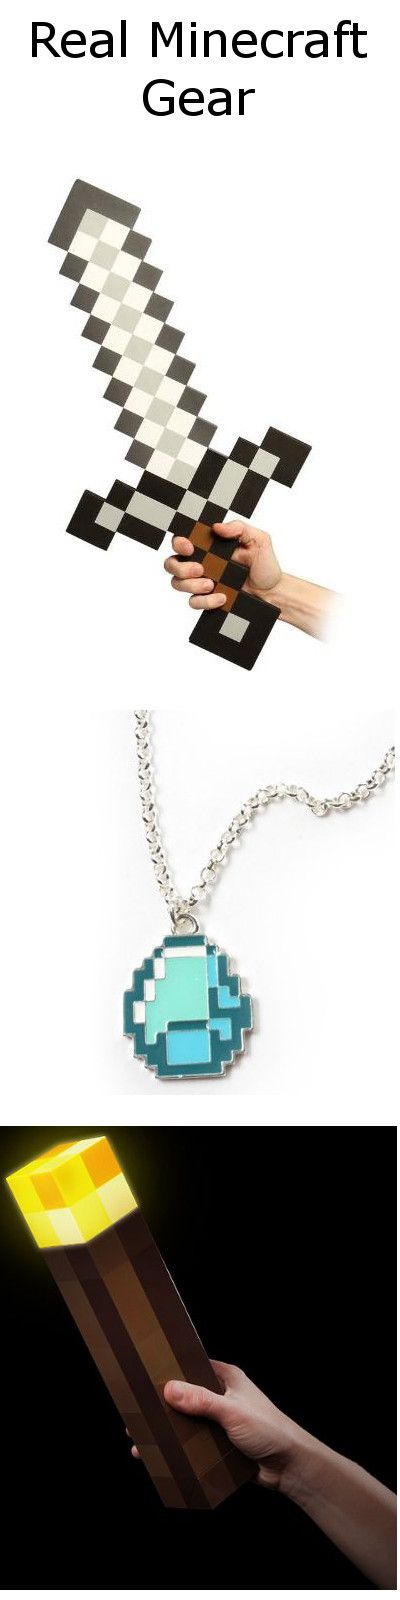 Real Life Minecraft sword, diamond necklace and torch. Pretty clever and funny really.